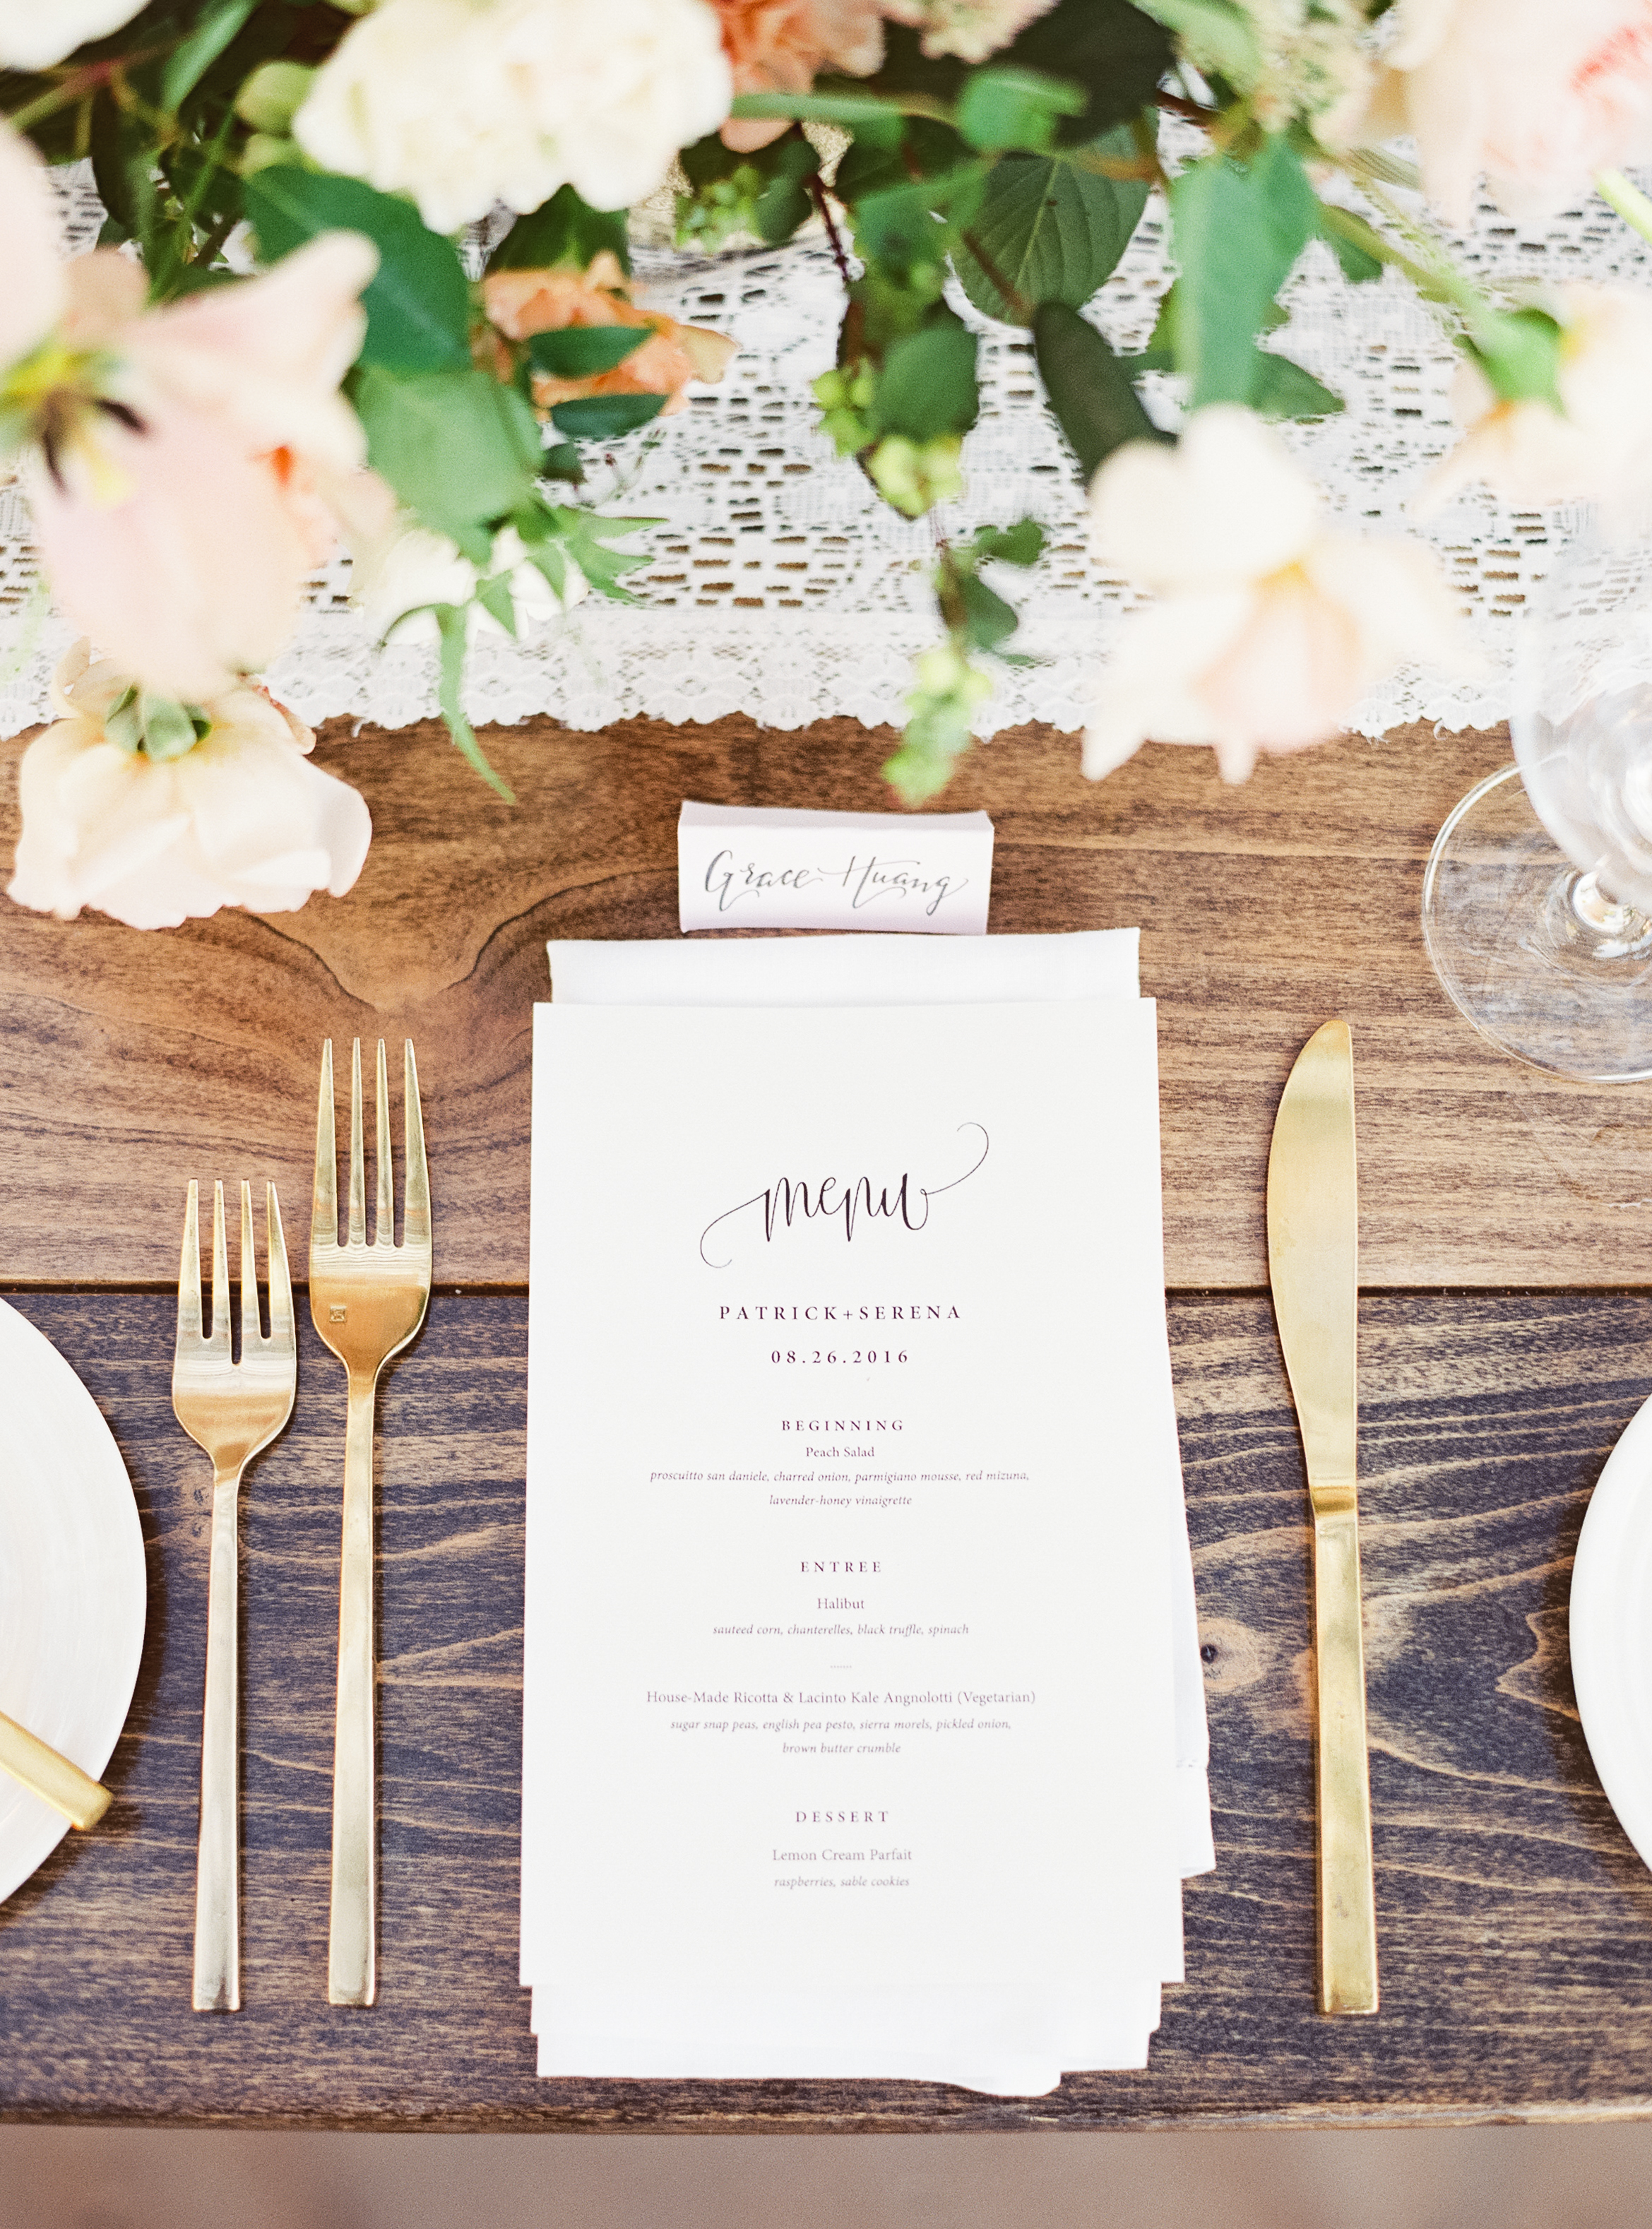 Napa Valley Wedding | Michele Beckwith | Chinese Wedding | Vineyard Wedding | Fine Art Wedding Blog | Joy Wed | Canadian Wedding Blog | Wedding Menu | Wedding Calligraphy